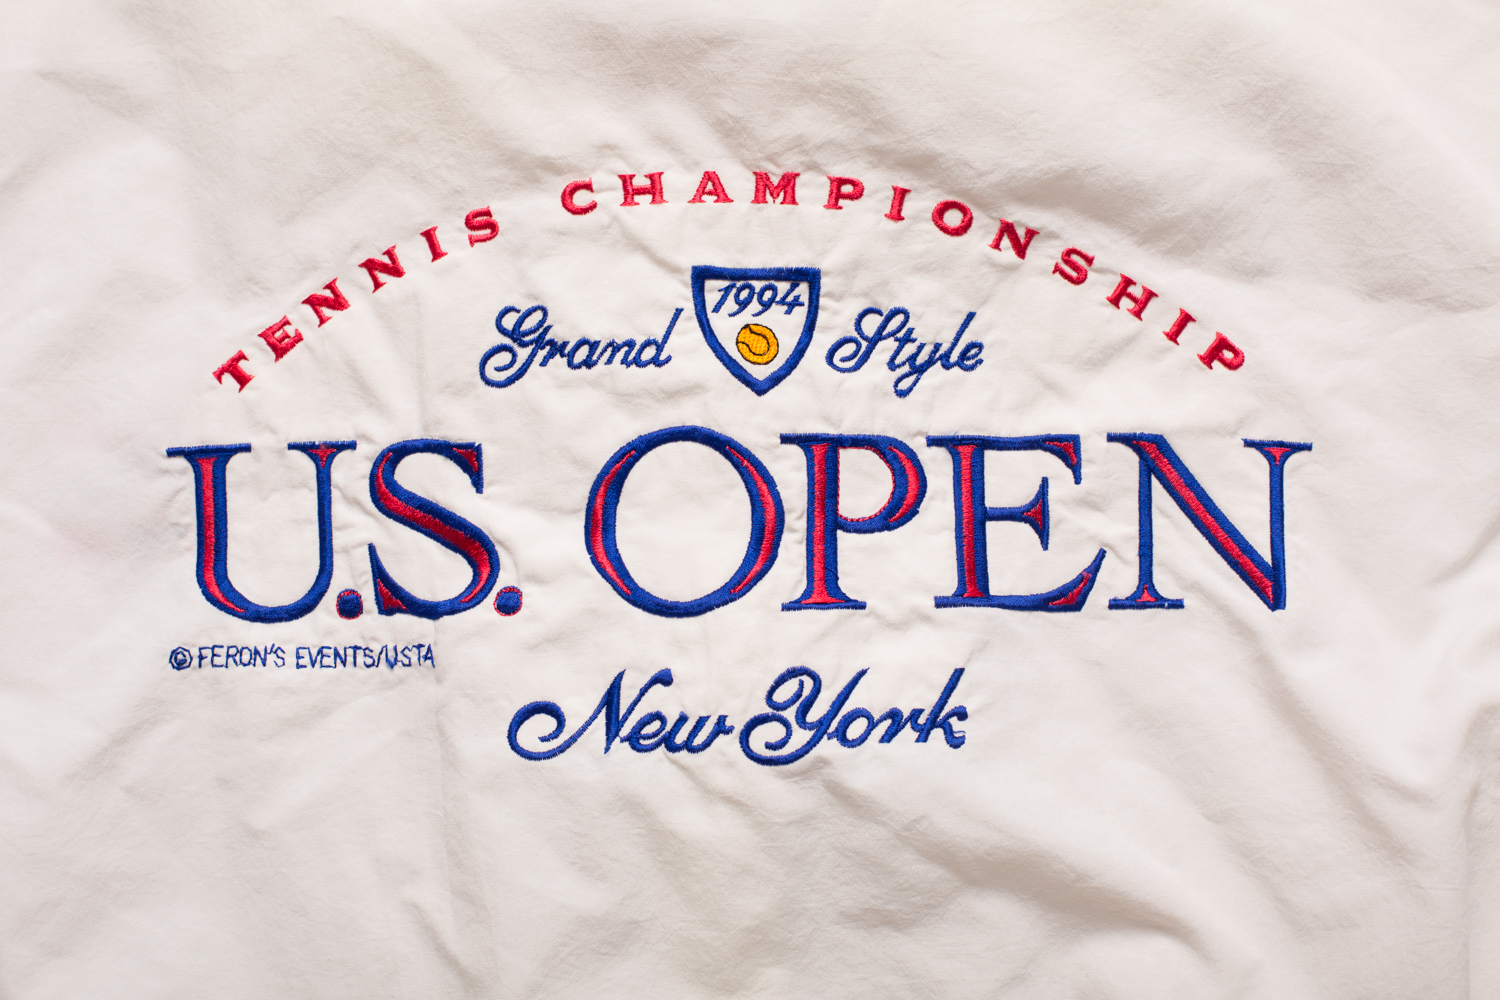 1994 US Open Tennis Jacket